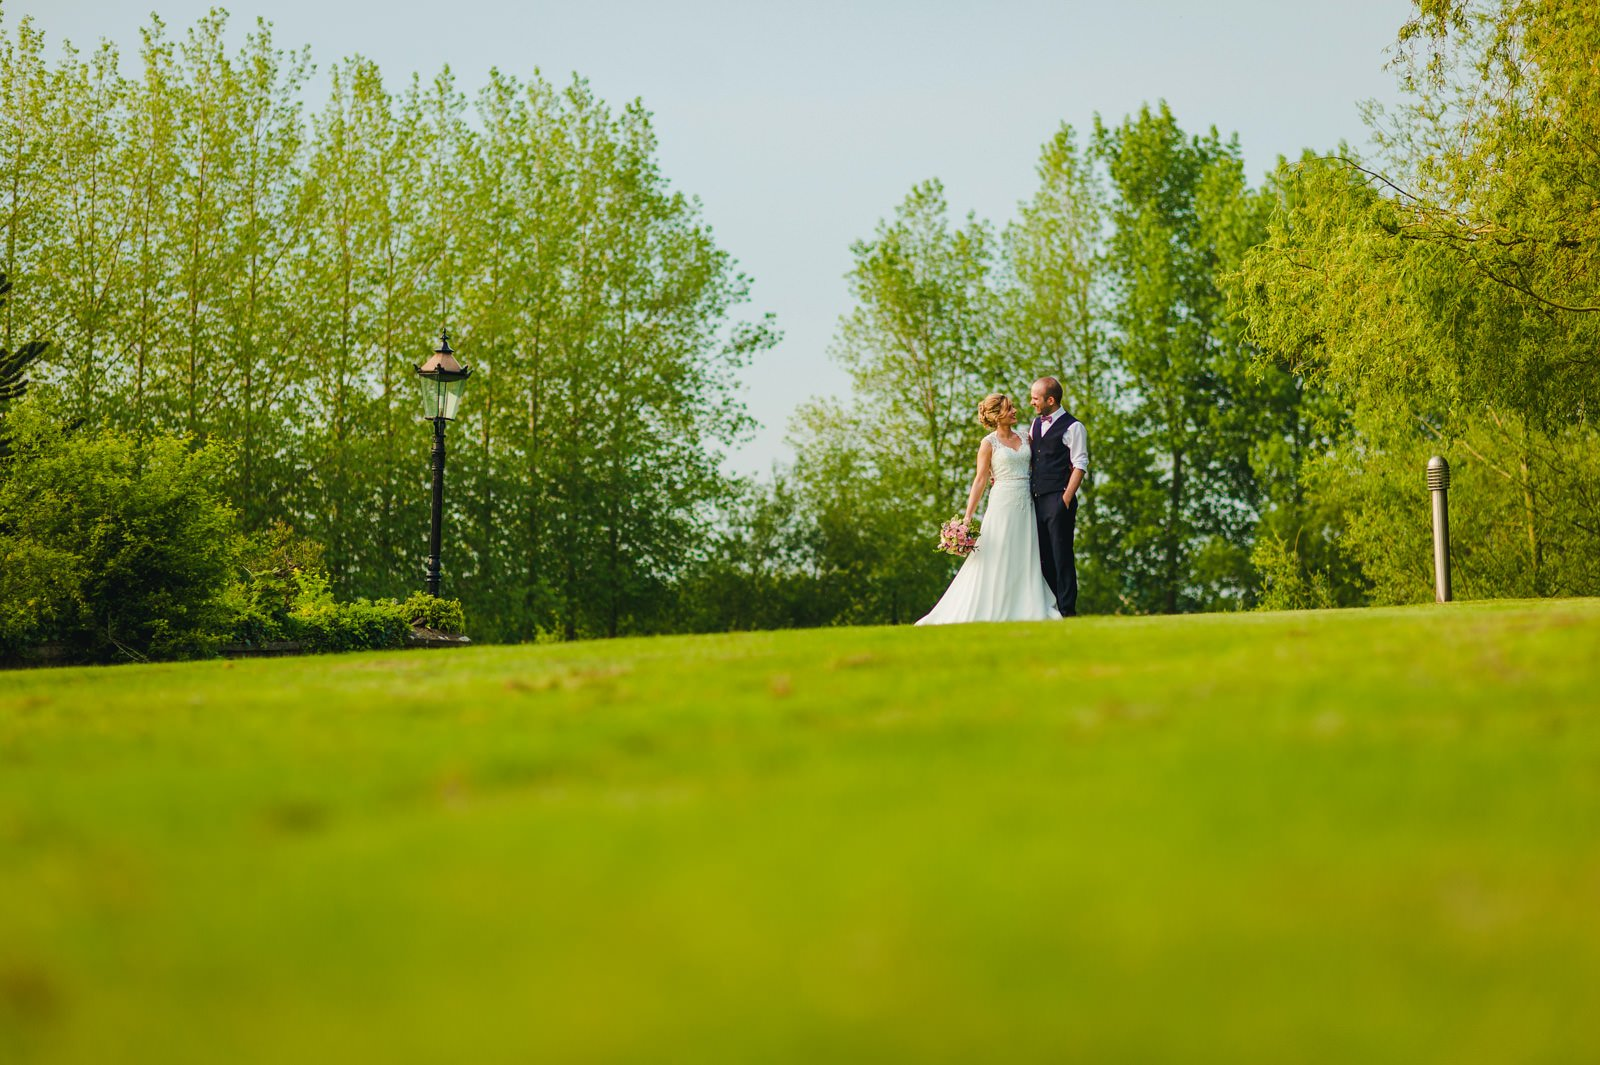 millers of netley wedding 102 - Millers Of Netley wedding, Dorrington, Shrewsbury | Emma + Ben